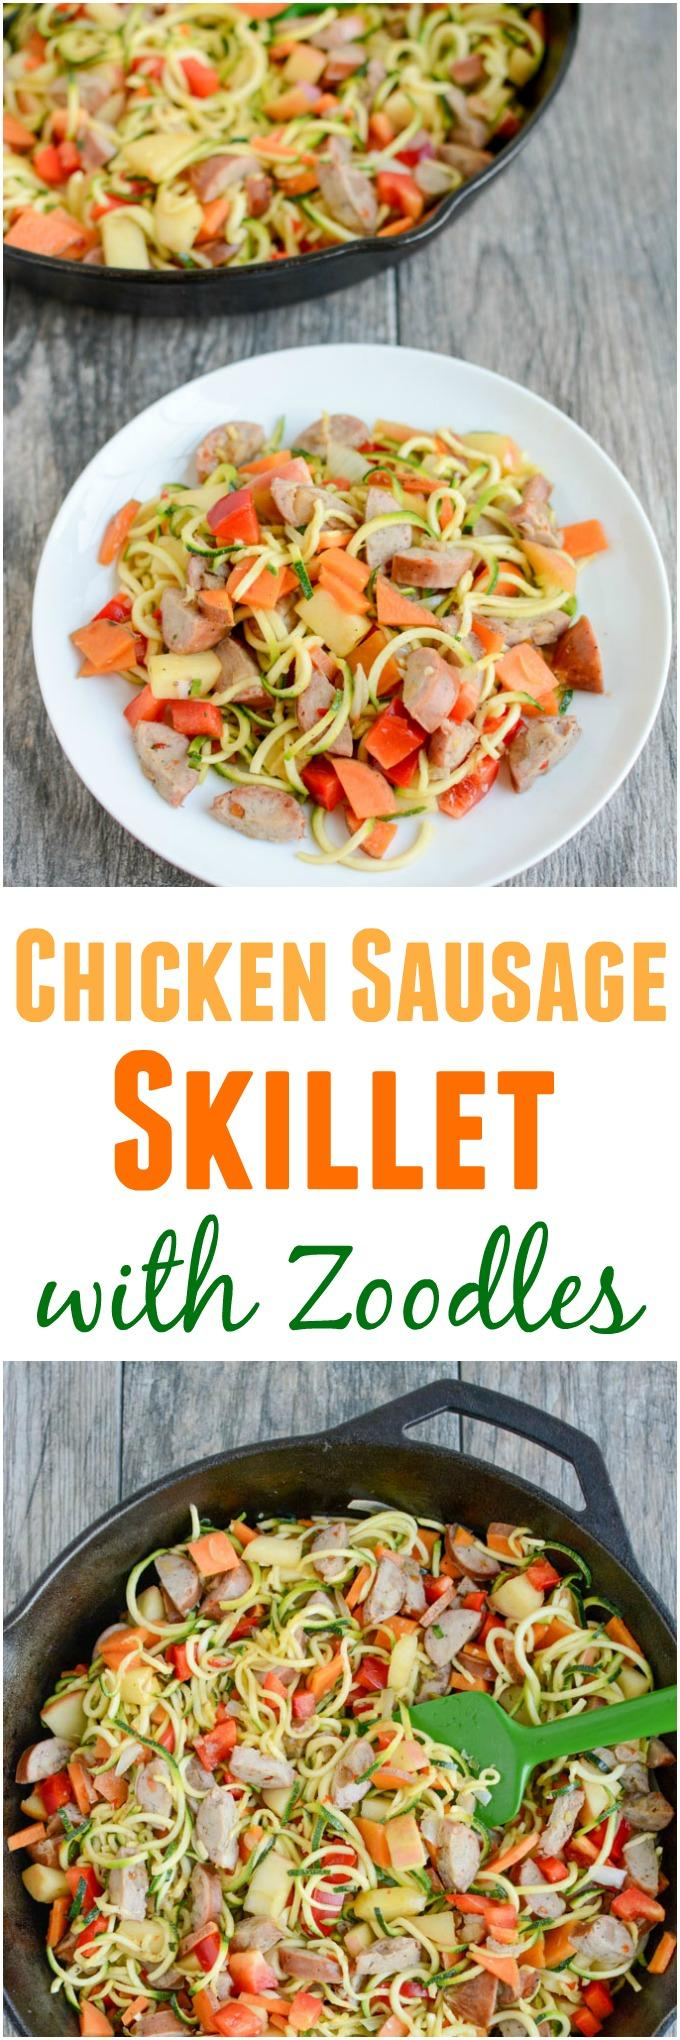 This gluten-free Chicken Sausage Skillet with Zoodles recipe will quickly become one of your go-to dinners. It's simple, healthy and easy to customize with whatever vegetables you have on hand.